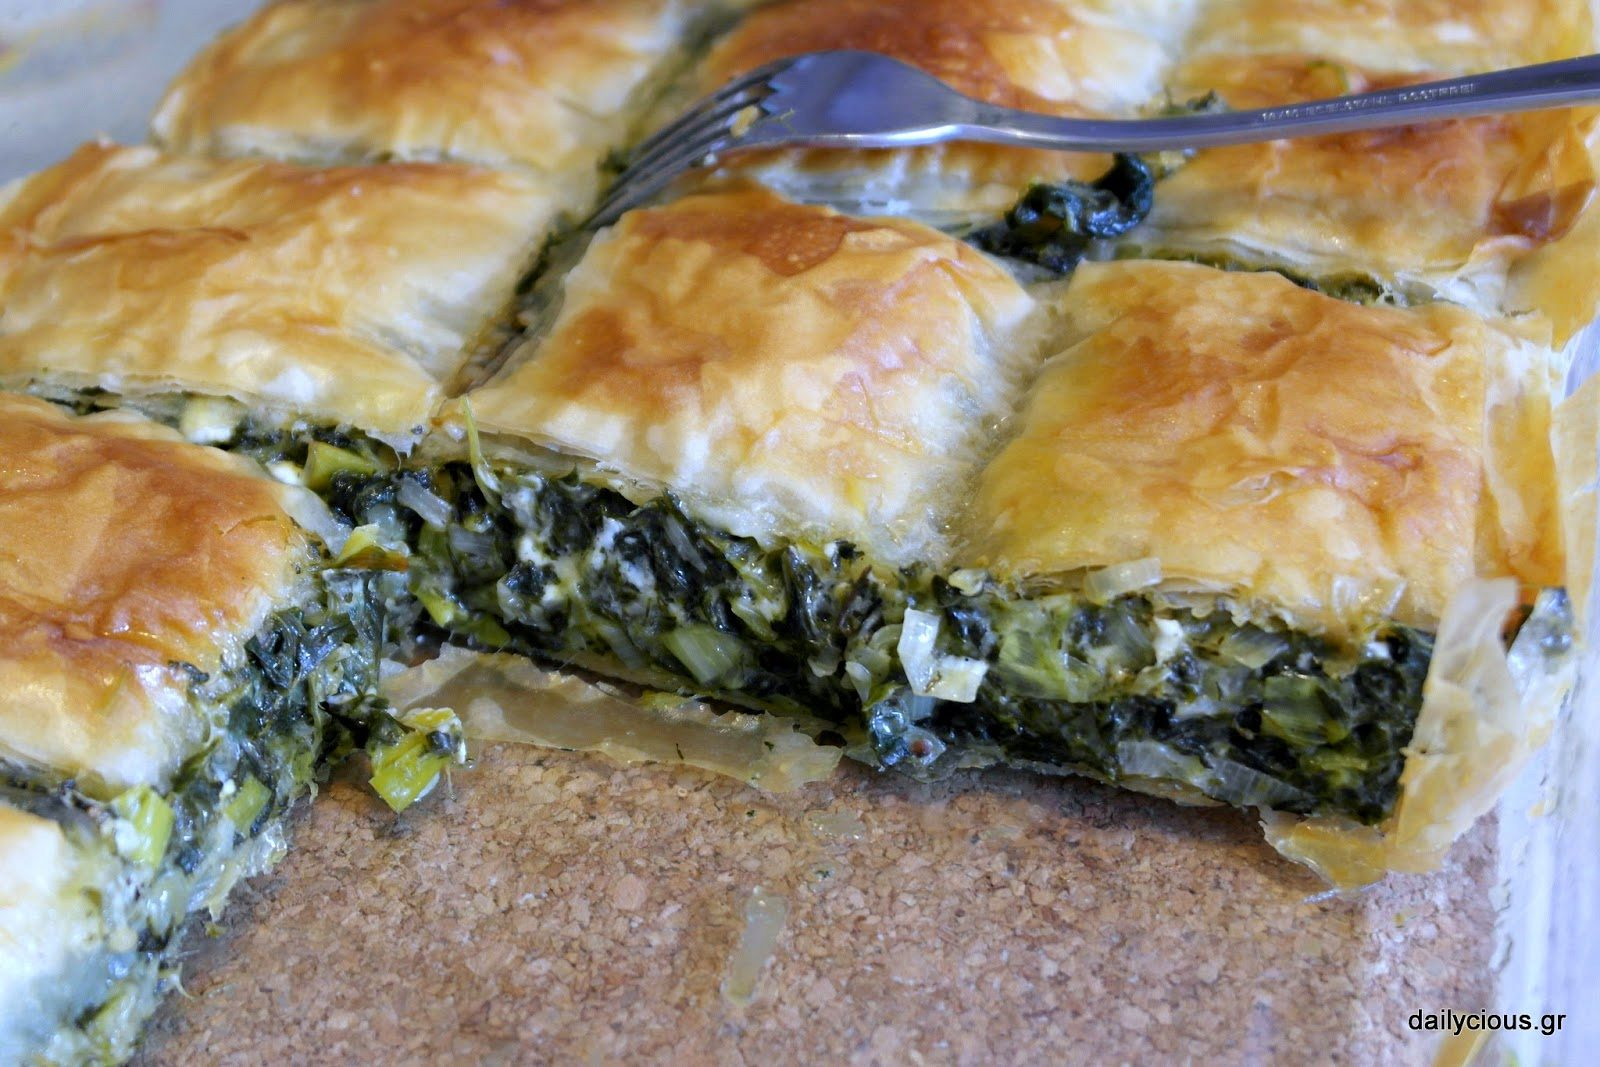 Preparing Greek spinach pie (traditional spanakopita)